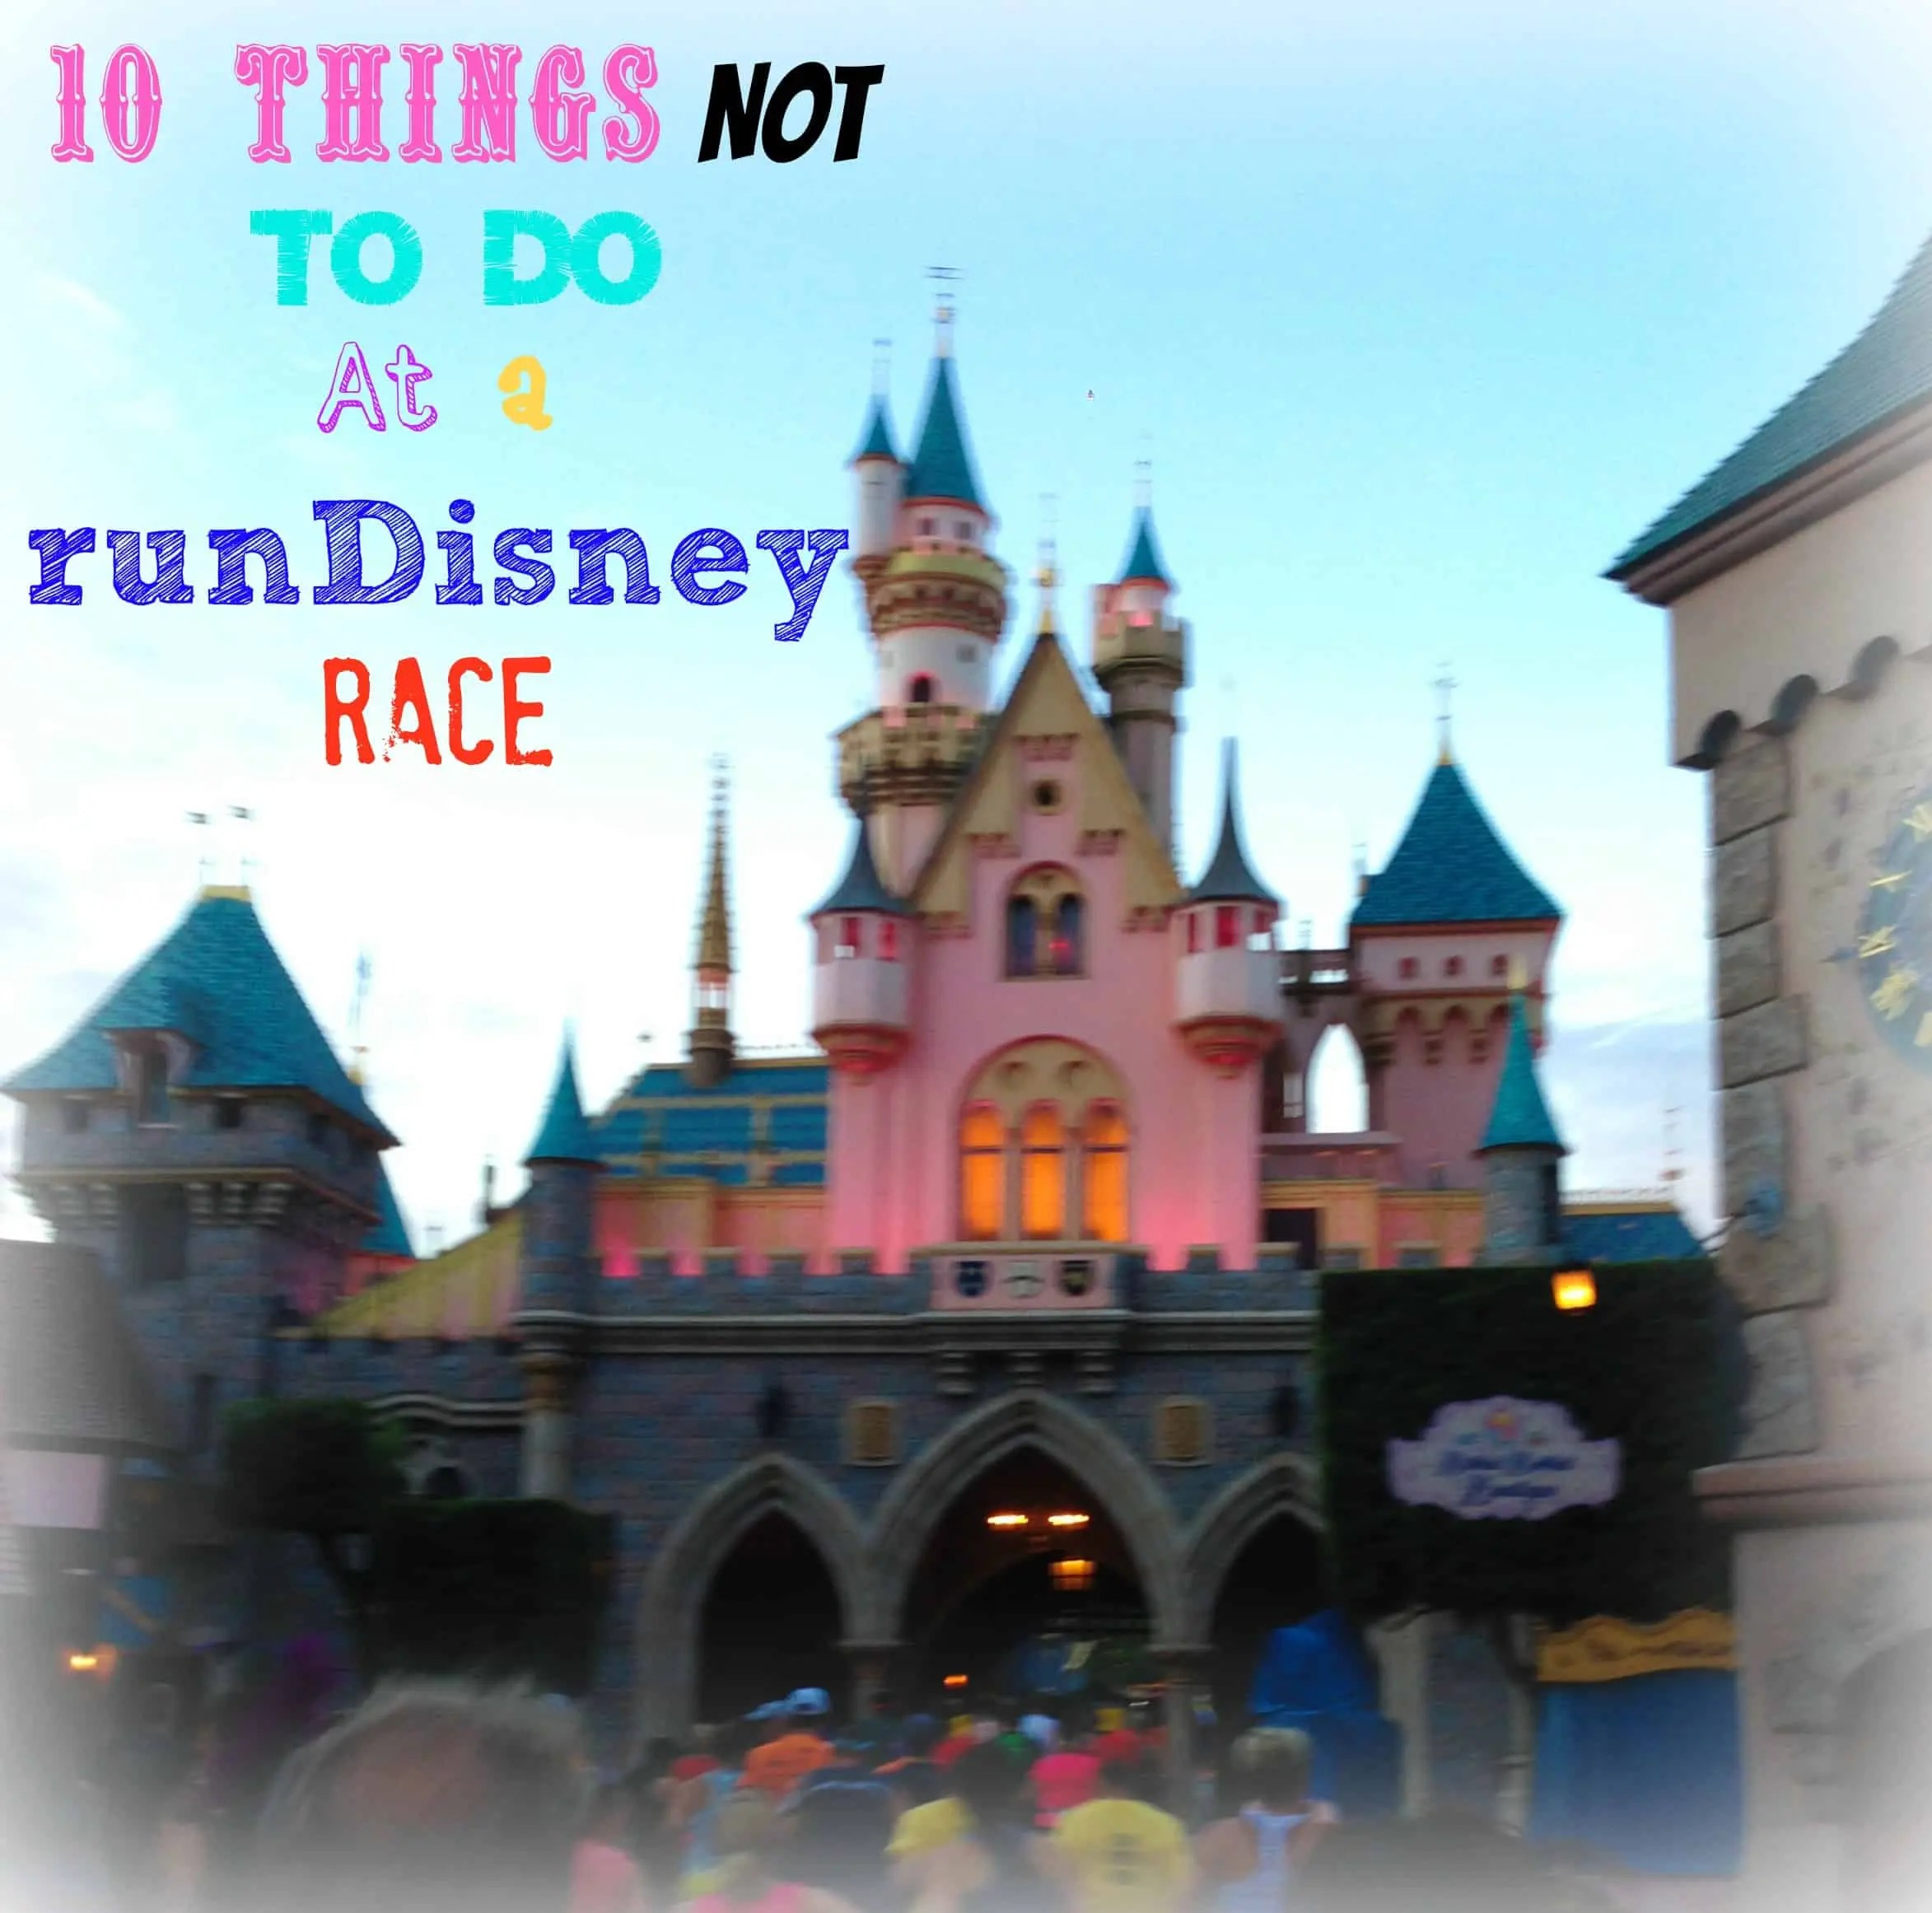 10 things not to do at a rundisney race